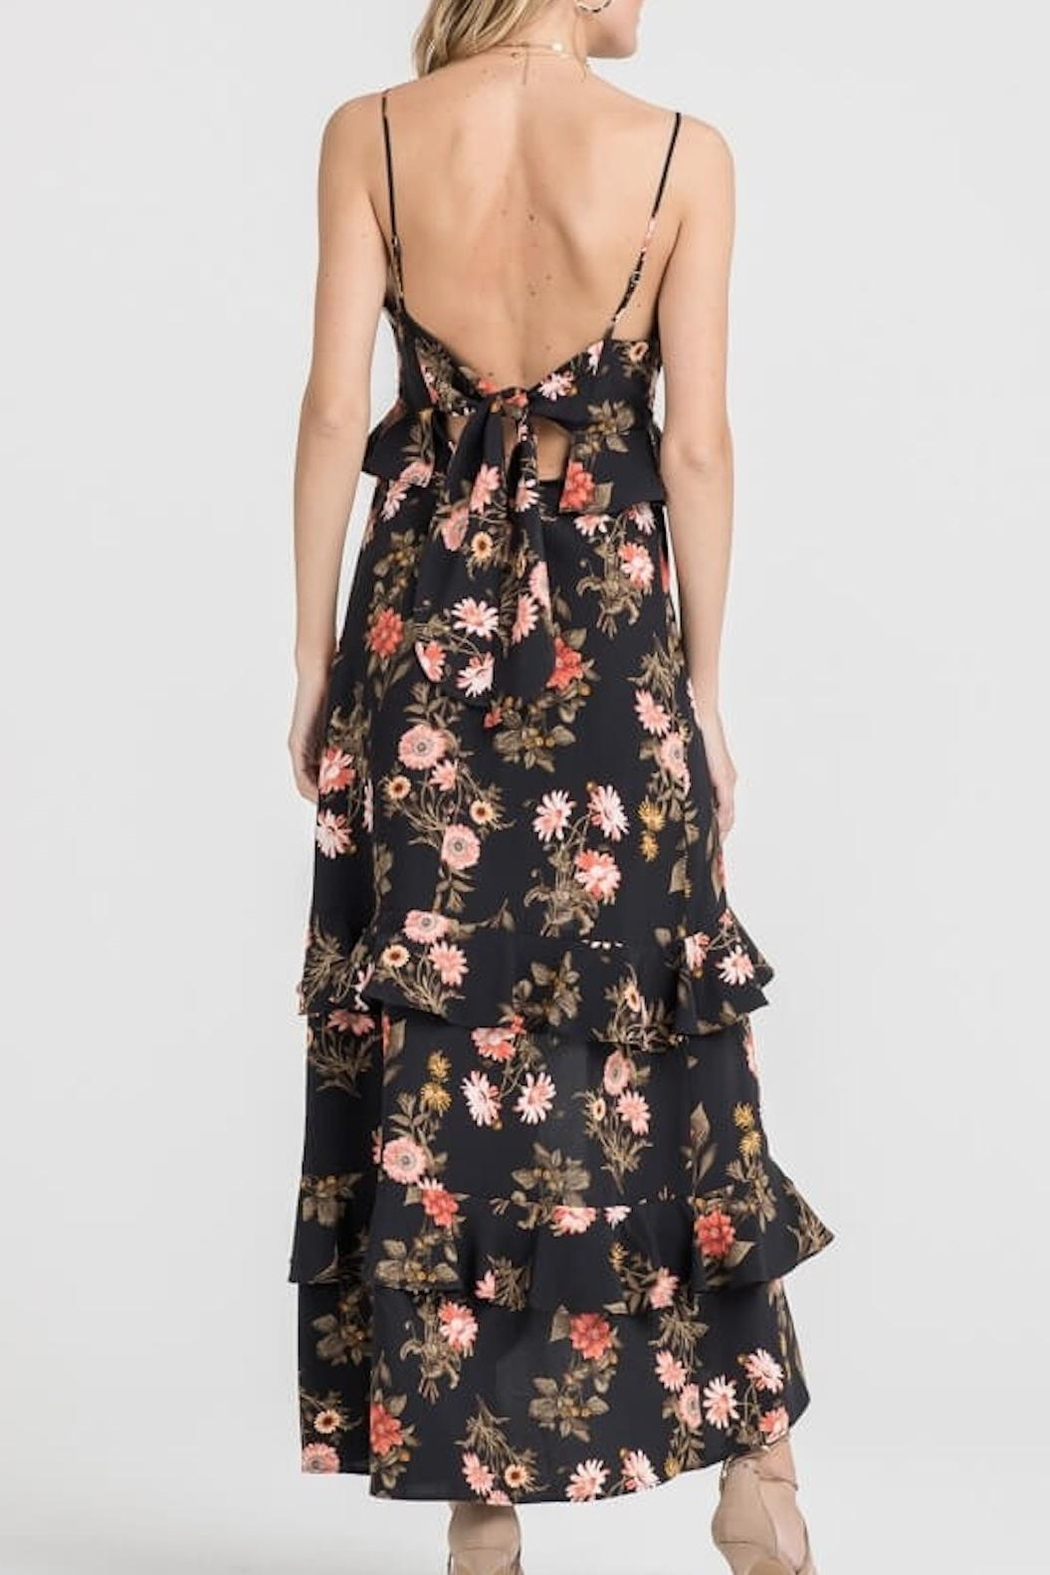 Lush Clothing  Floral Maxi Dress - Front Full Image